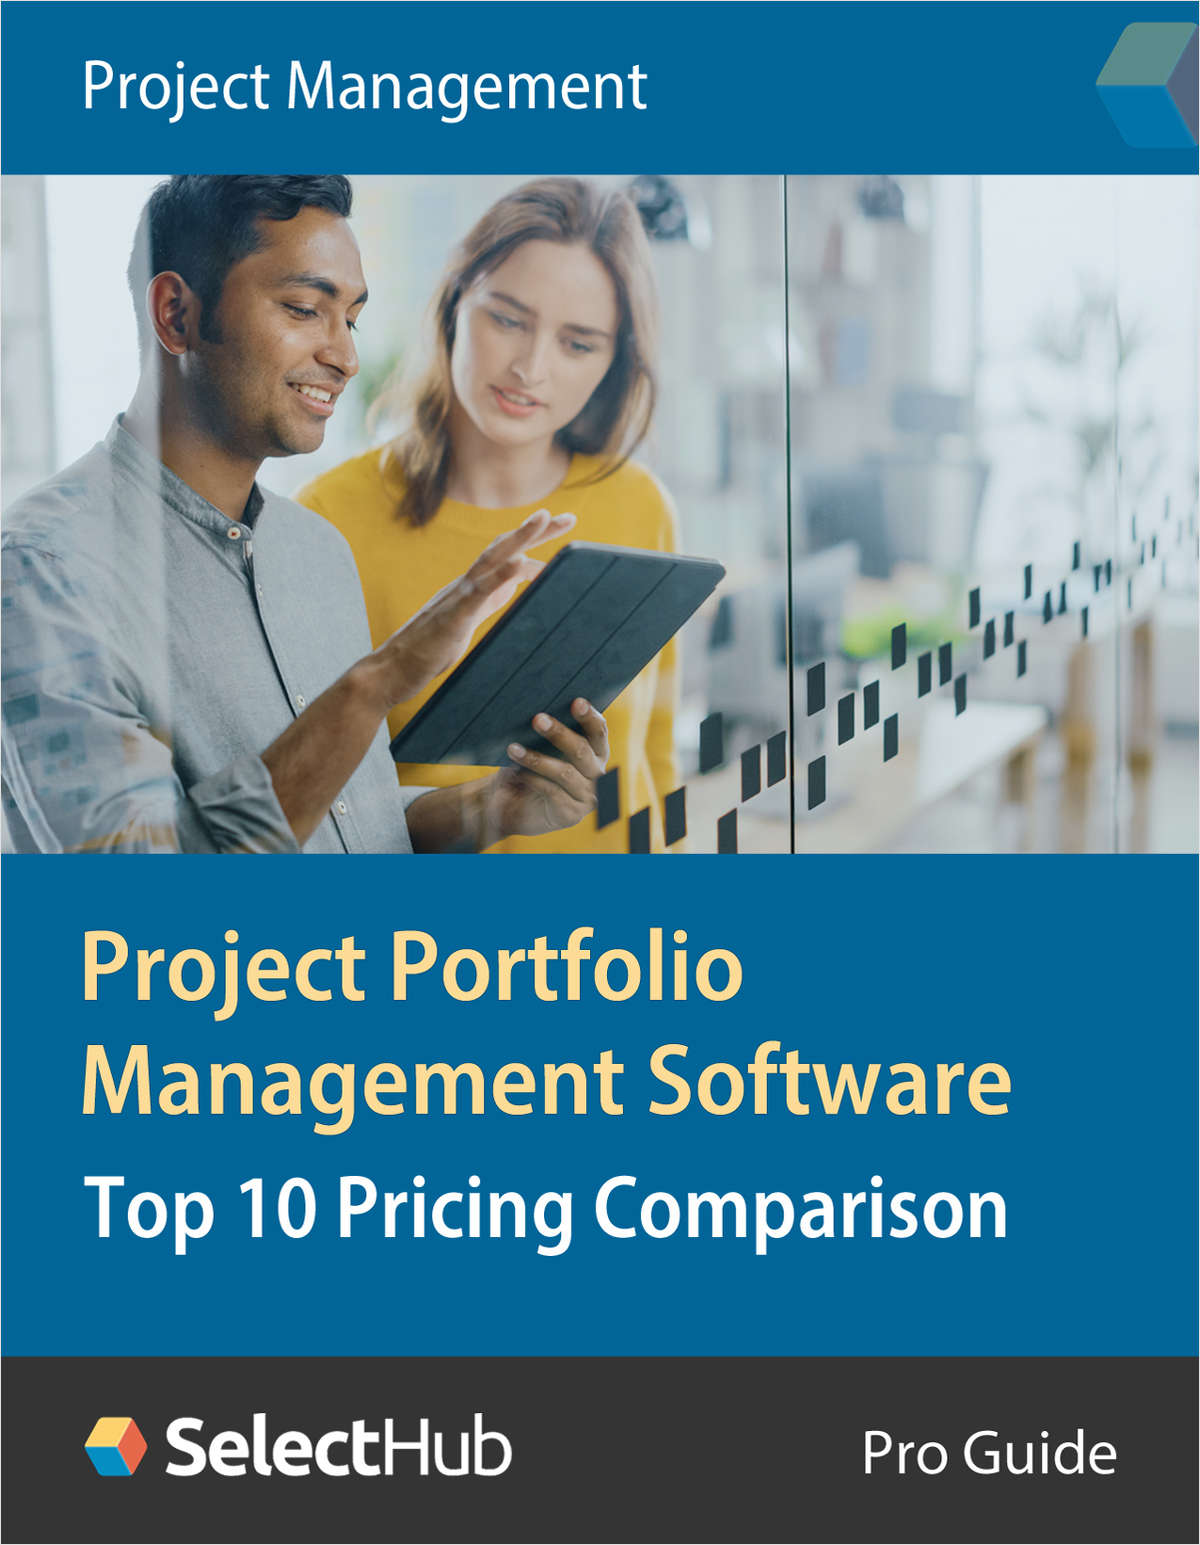 Project Portfolio Management Software: Top 10 Pricing Comparison Guide